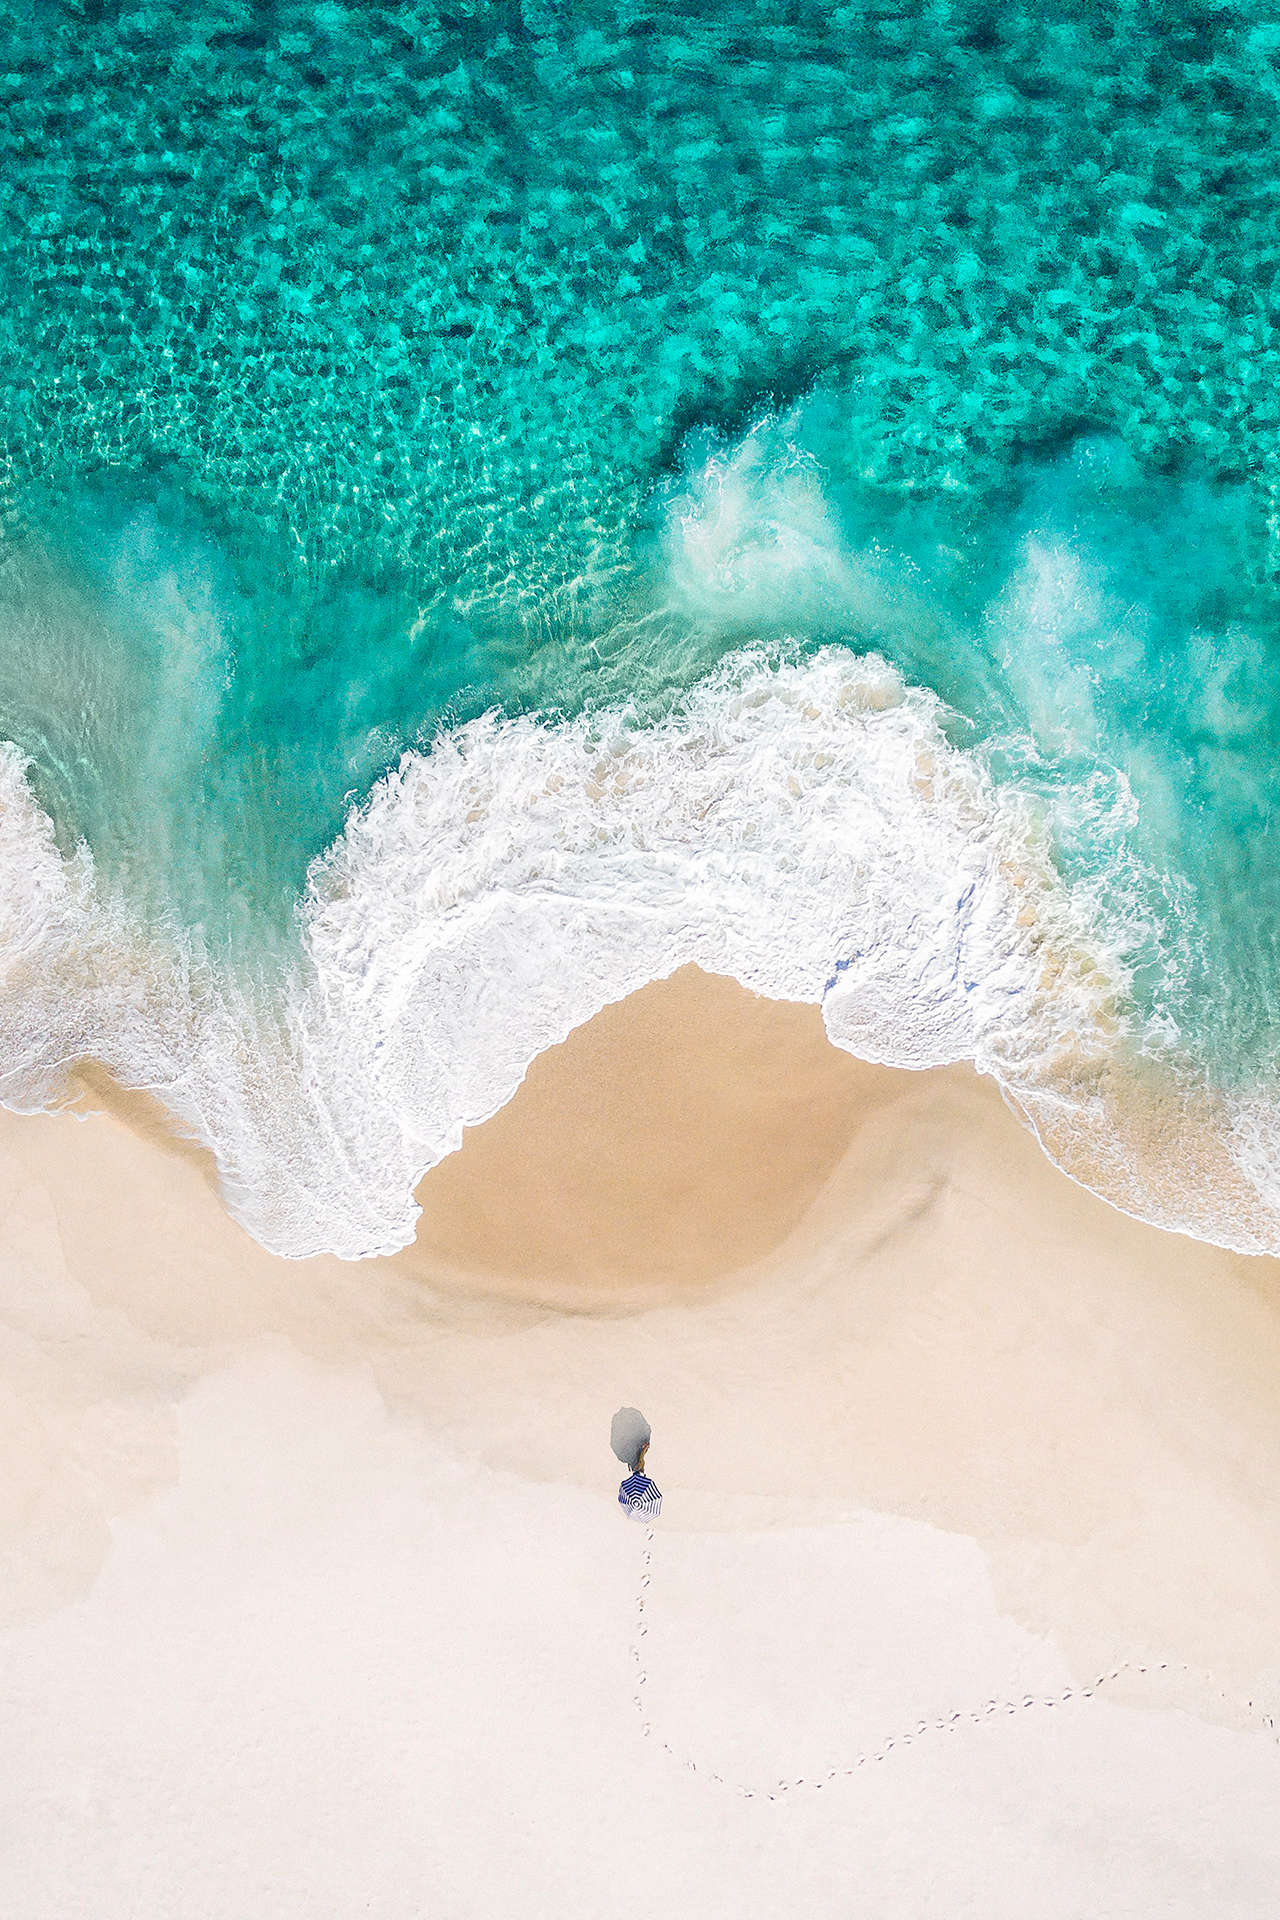 Download All New Ios 10 3 2 Wallpapers Ioswall Beach Phone